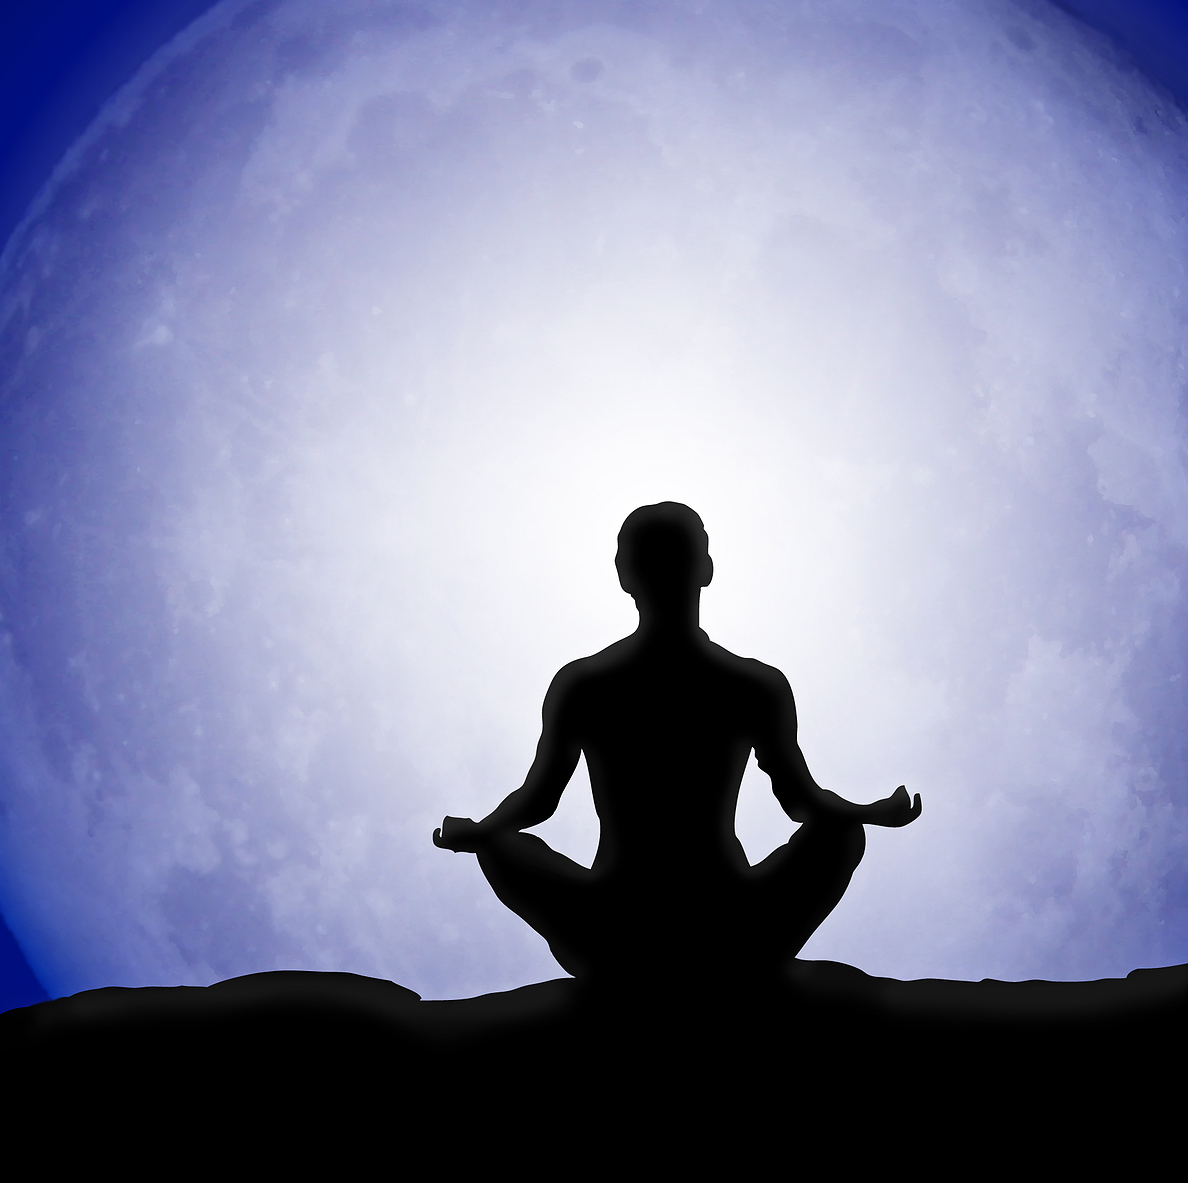 Full Moon, Cacao Ceremony - One Yoga for All